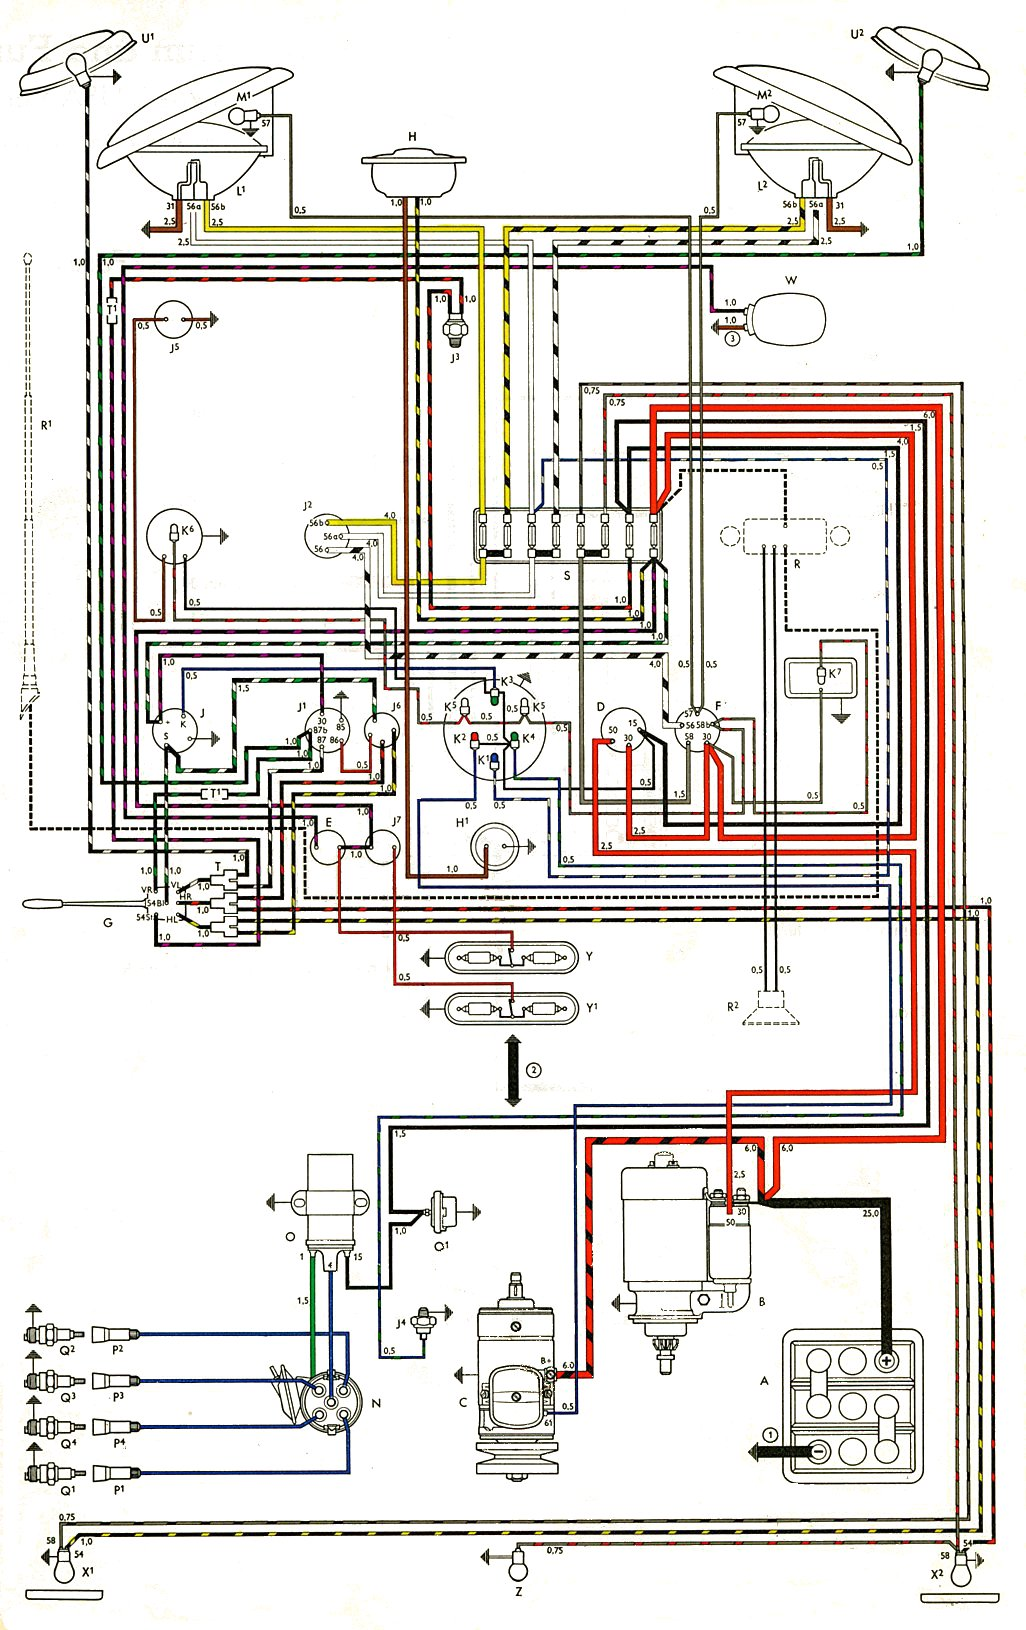 1973 Vw Transporter Bus Wiring Diagram Archive Of Automotive Thesamba Com Type 2 Diagrams Rh